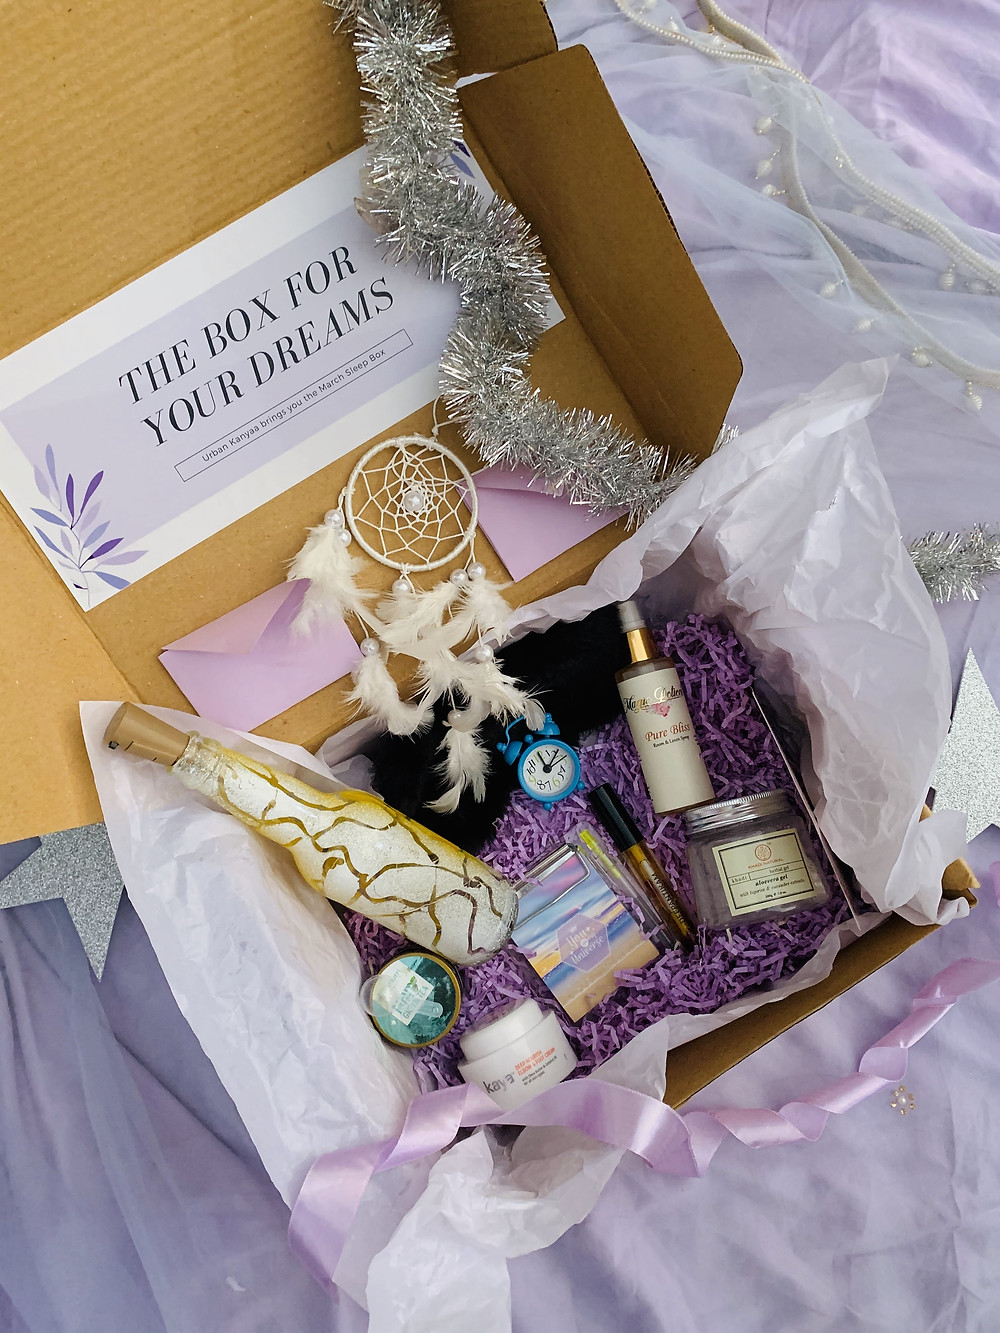 The ultimate sleep box for gifting to women